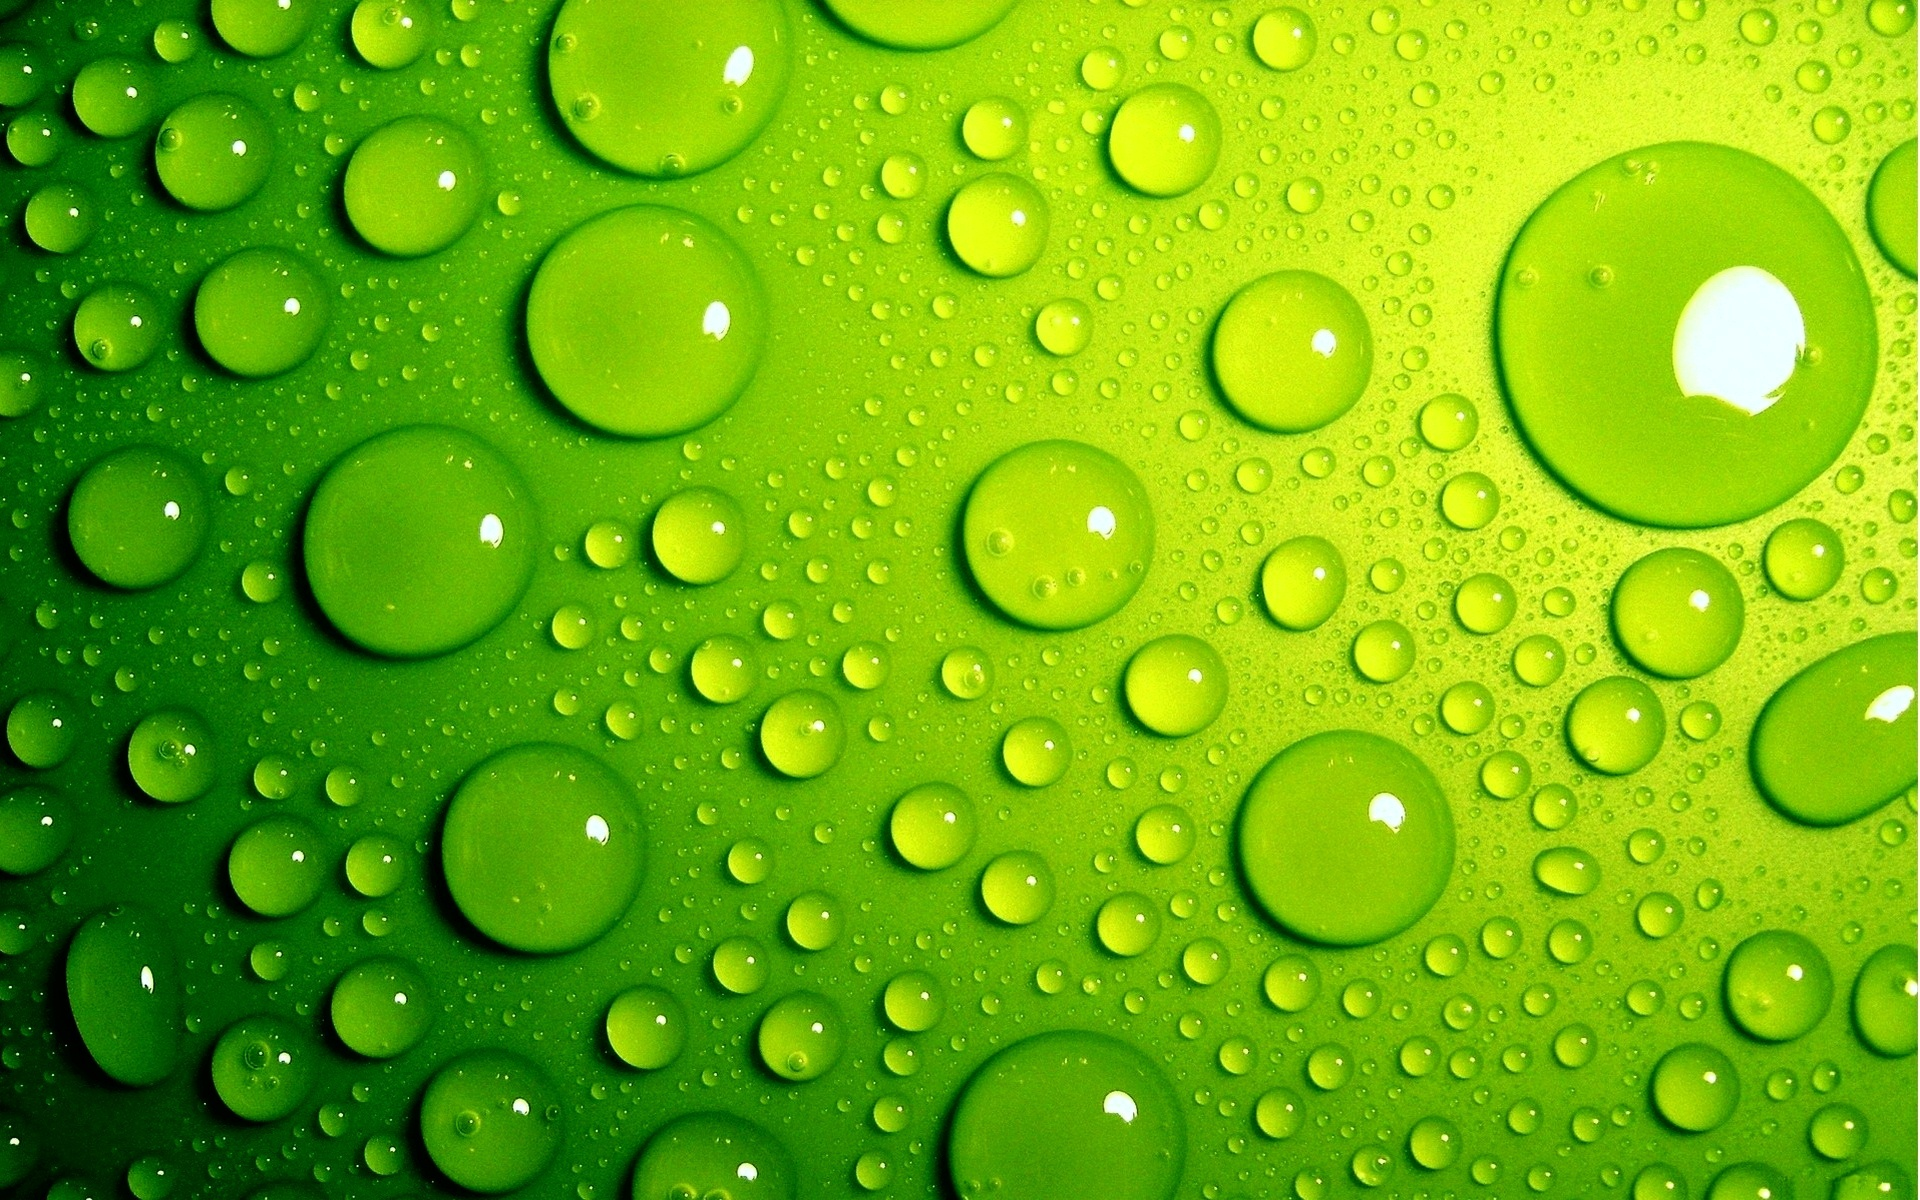 Green Abstract Free Hd 1080p Wallpaper #7831 Hd Wallpapers ...